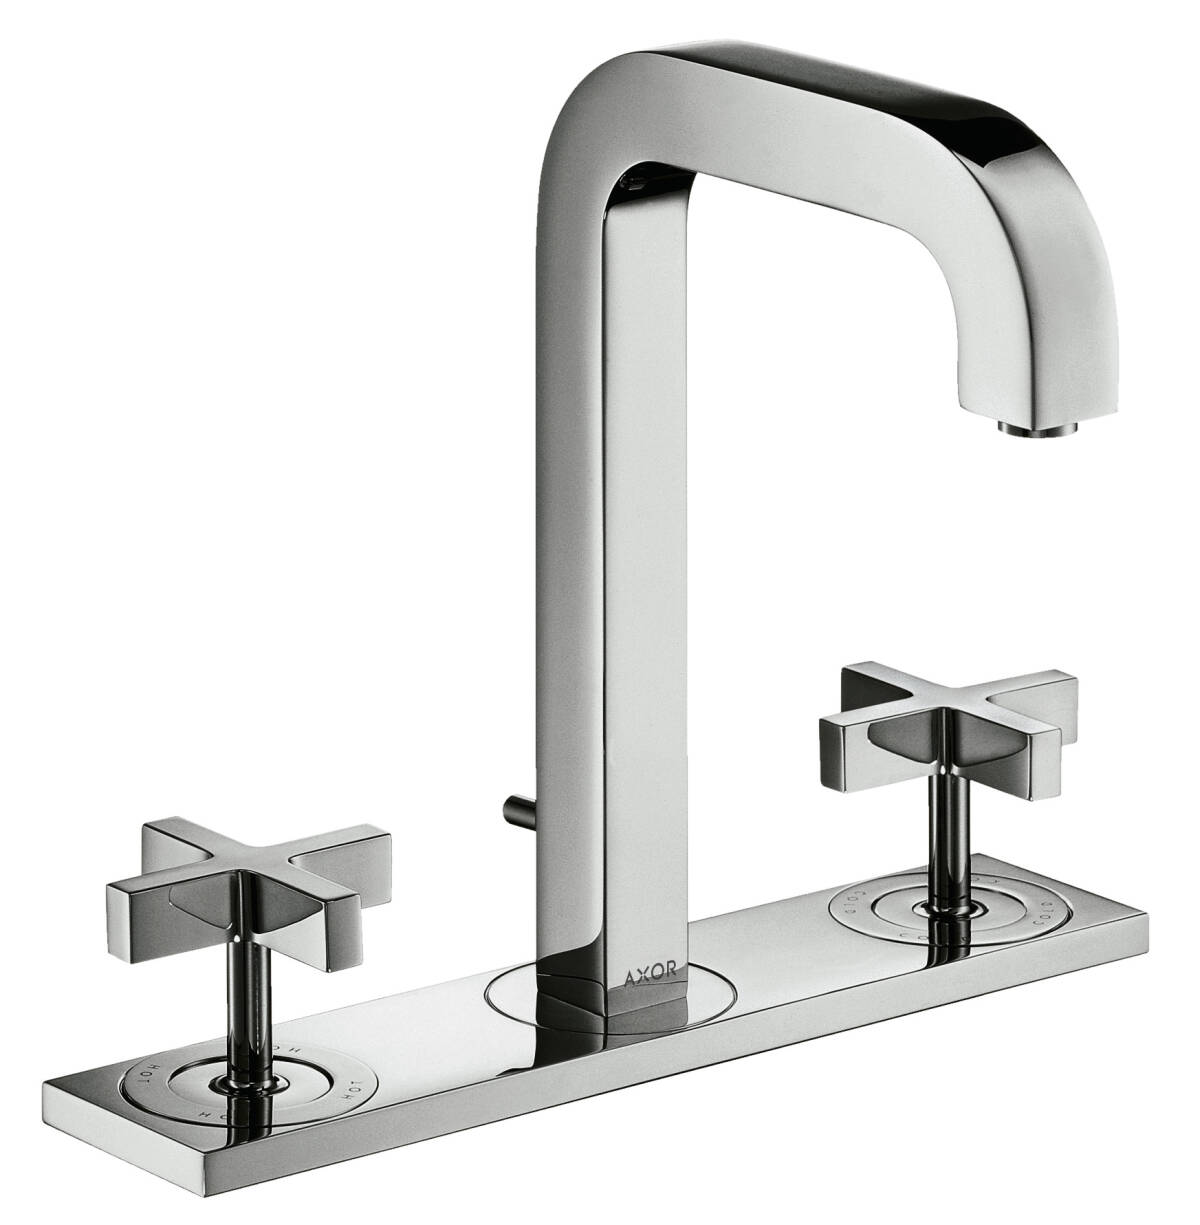 3-hole basin mixer 170 with spout 140 mm, cross handles, plate and pop-up waste set, Brushed Gold Optic, 39134250